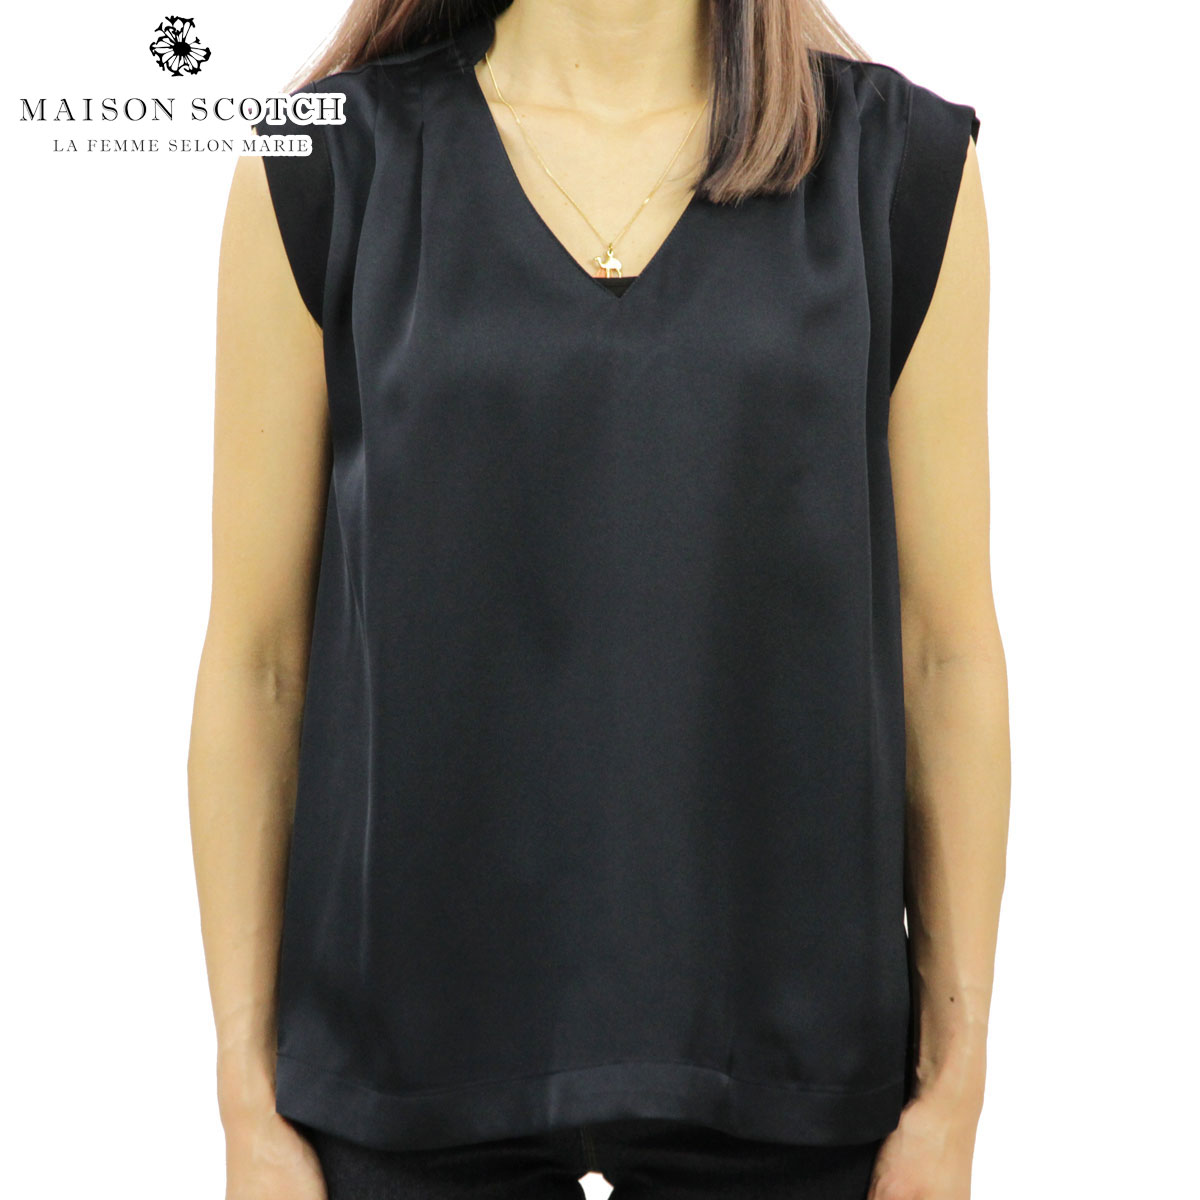 10%OFFセール 【販売期間 8/2 20:00~8/9 01:59】 メゾンスコッチ MAISON SCOTCH 正規販売店 レディース 無地 タンクトップ SLEEVELESS SILKY FEEL TOP WITH PLEAT DETAIL AT THE SHOULDER 143449 04 52814 NAVY